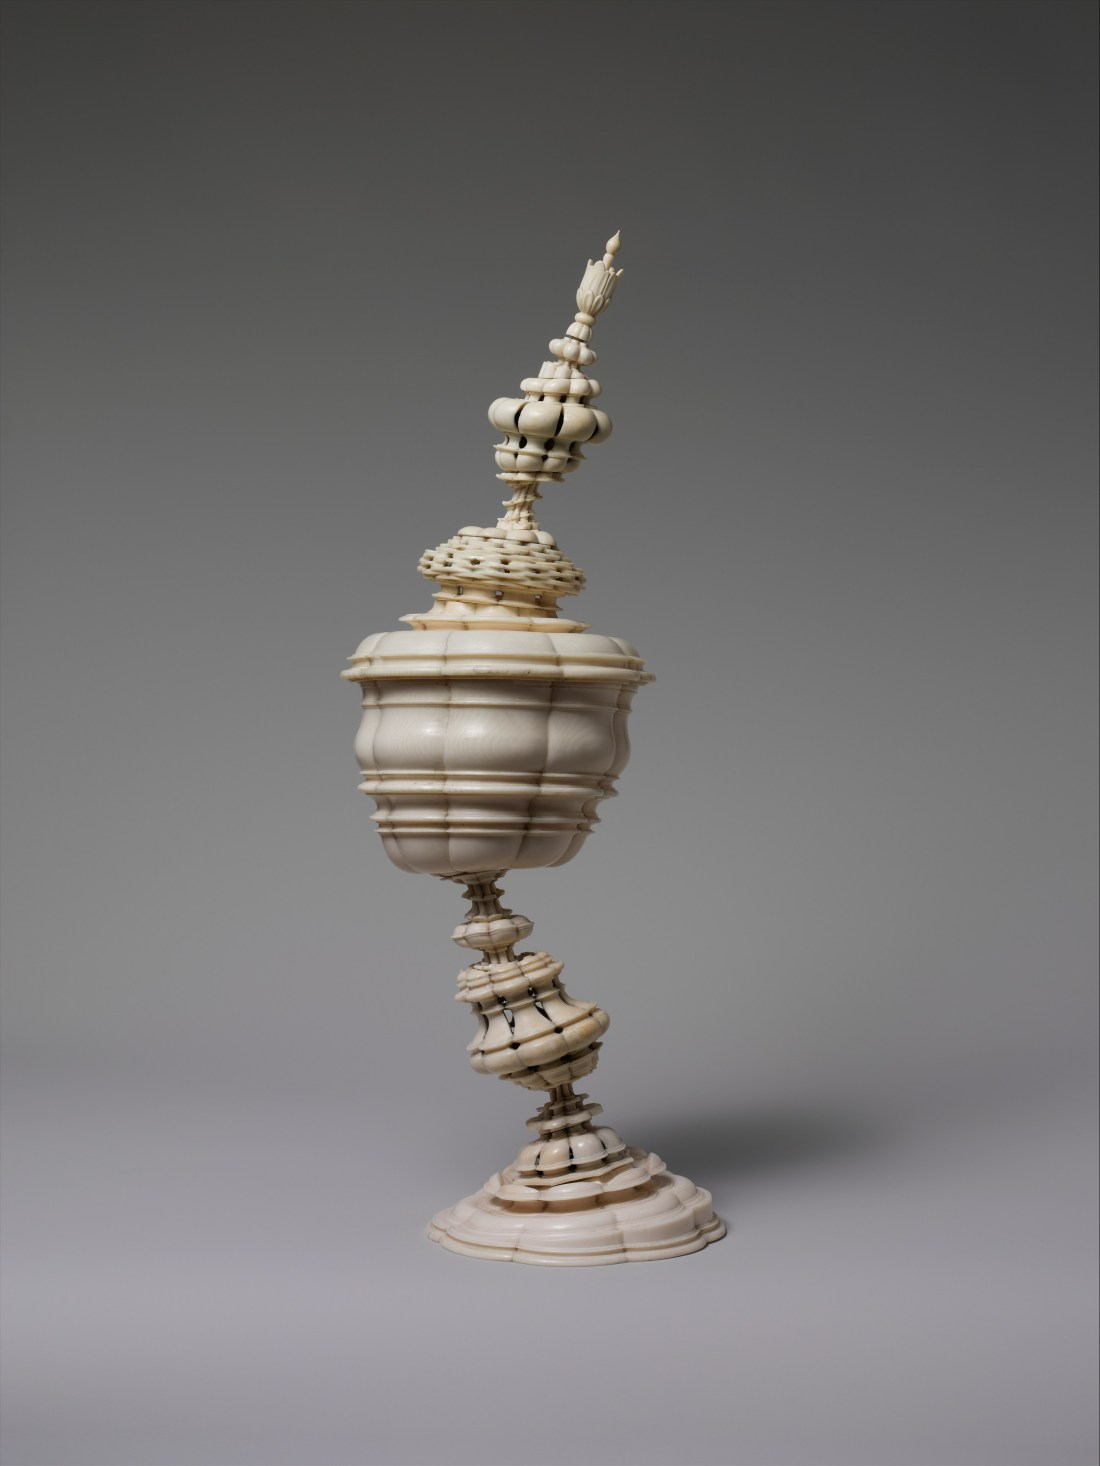 Standing cup. 17th c.